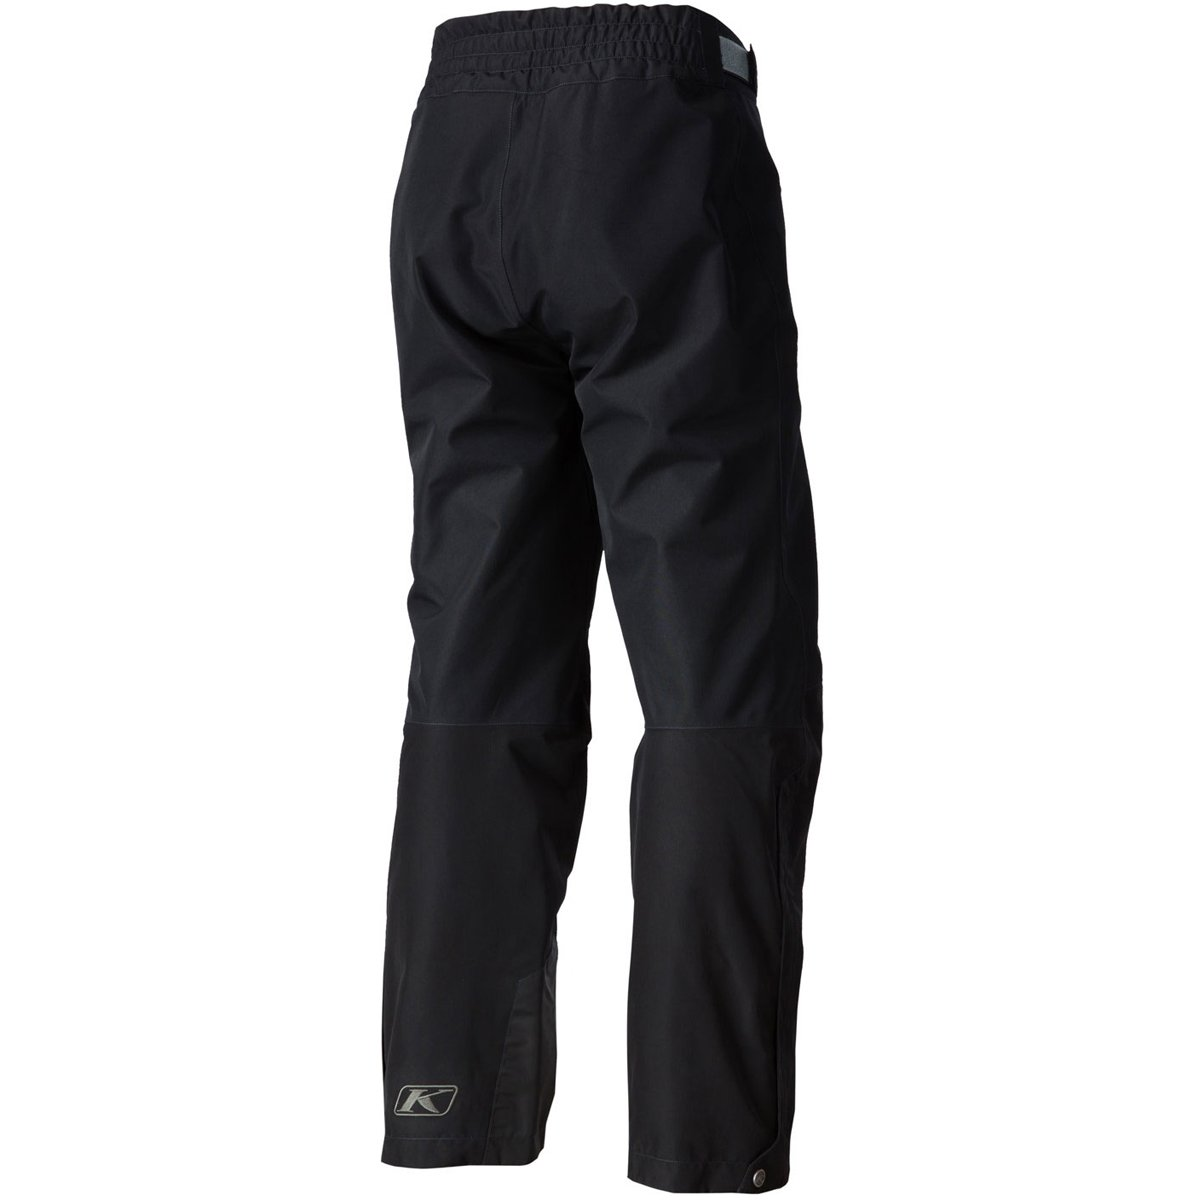 Klim Instinct Men's Ski Snowmobile Pants - Black / 2X-Large Tall by Klim (Image #2)